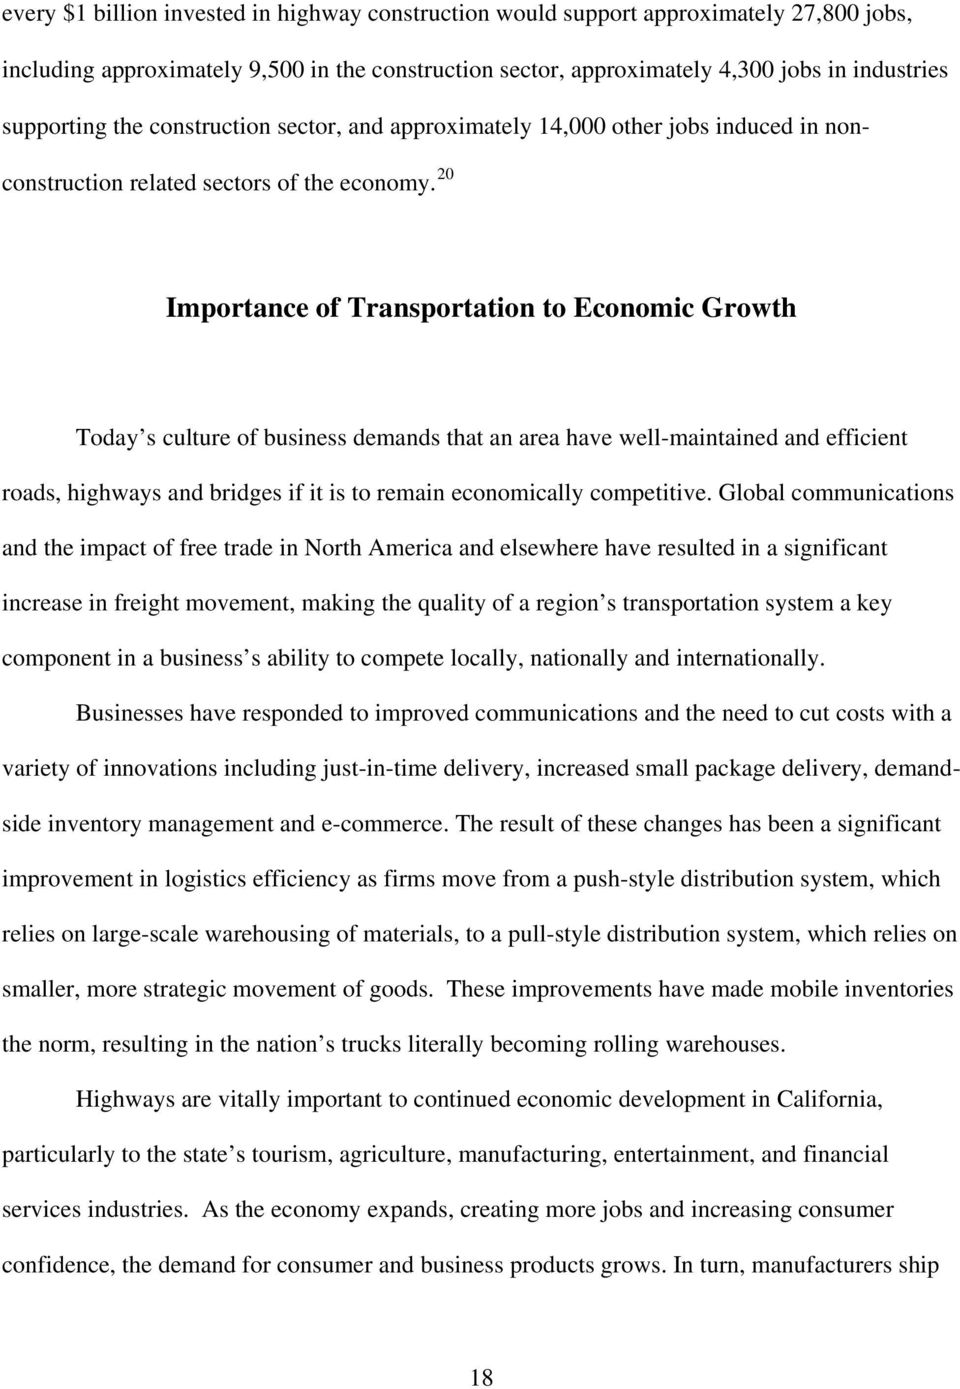 20 Importance of Transportation to Economic Growth Today s culture of business demands that an area have well-maintained and efficient roads, highways and bridges if it is to remain economically